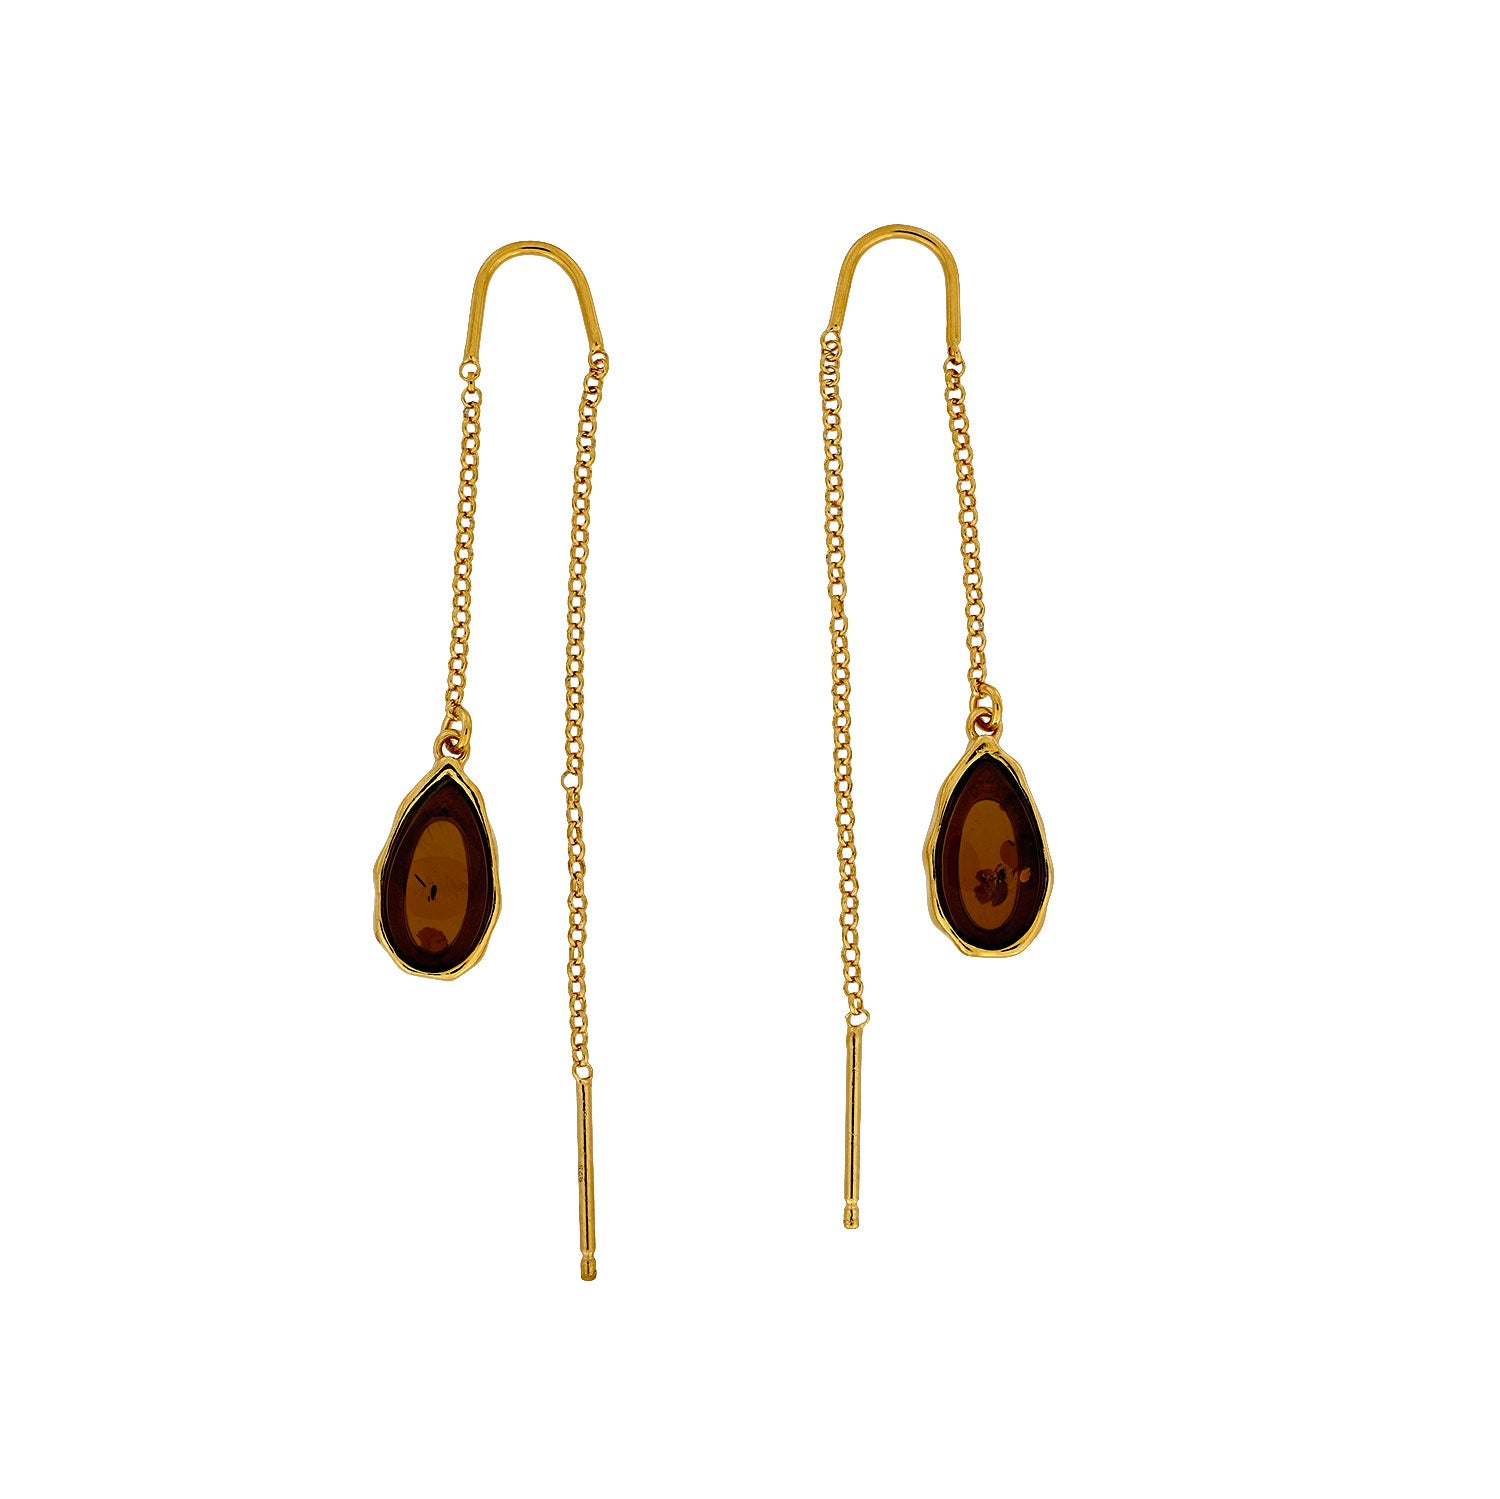 Northern Lights Amber Threader Earrings in Gold Vermeil